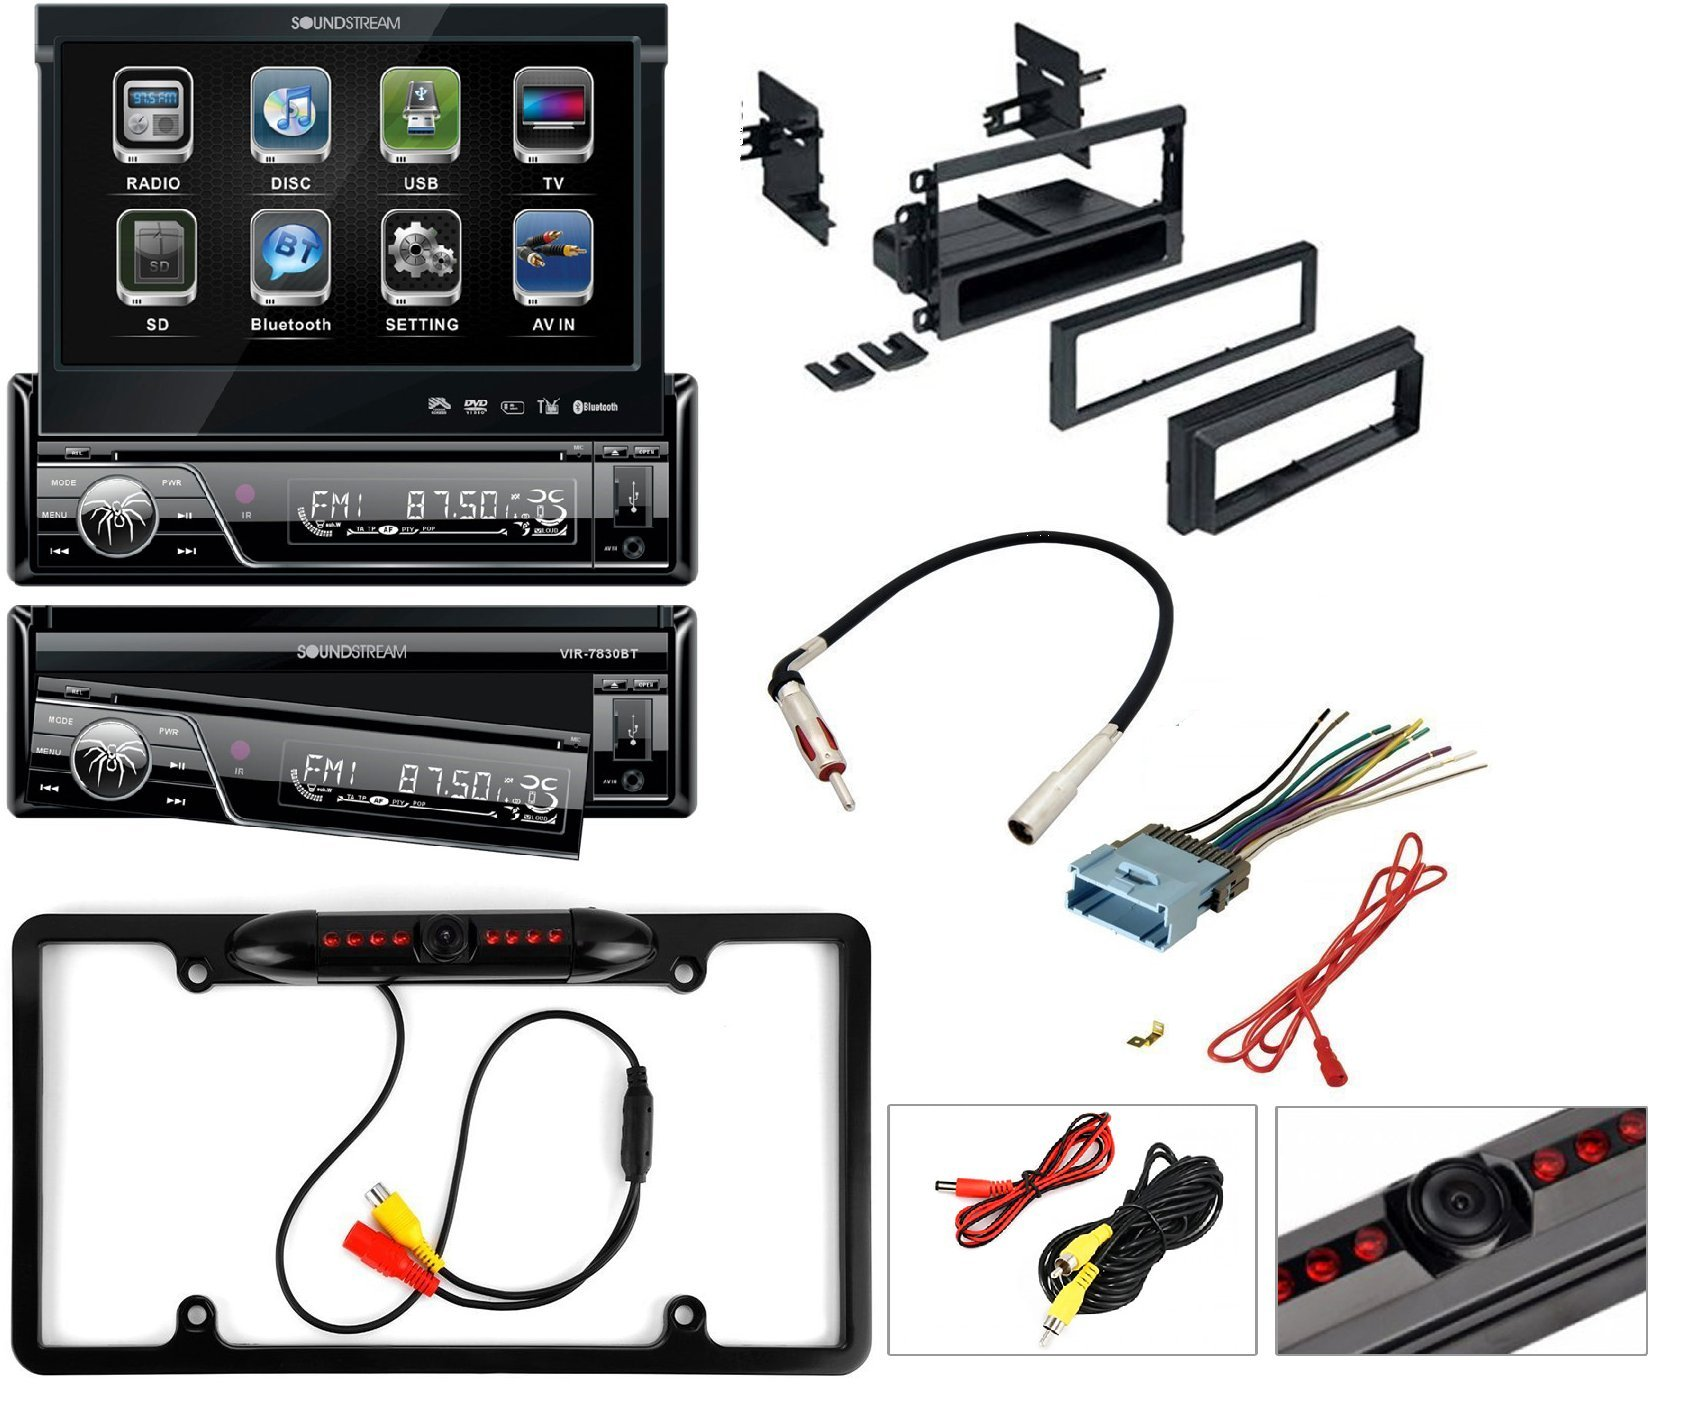 Soundstream VIR-7830B Single-Din Bluetooth Car Stereo DVD Player with 7-Inch LCD Touchscreen Car Stereo Dash Install Mounting Kit Wire Harness Radio Antenna + Cache Nightvision Camera by CACHE, SOUNDSTREAM, AMERICAN INTERNATIONAL, METRA